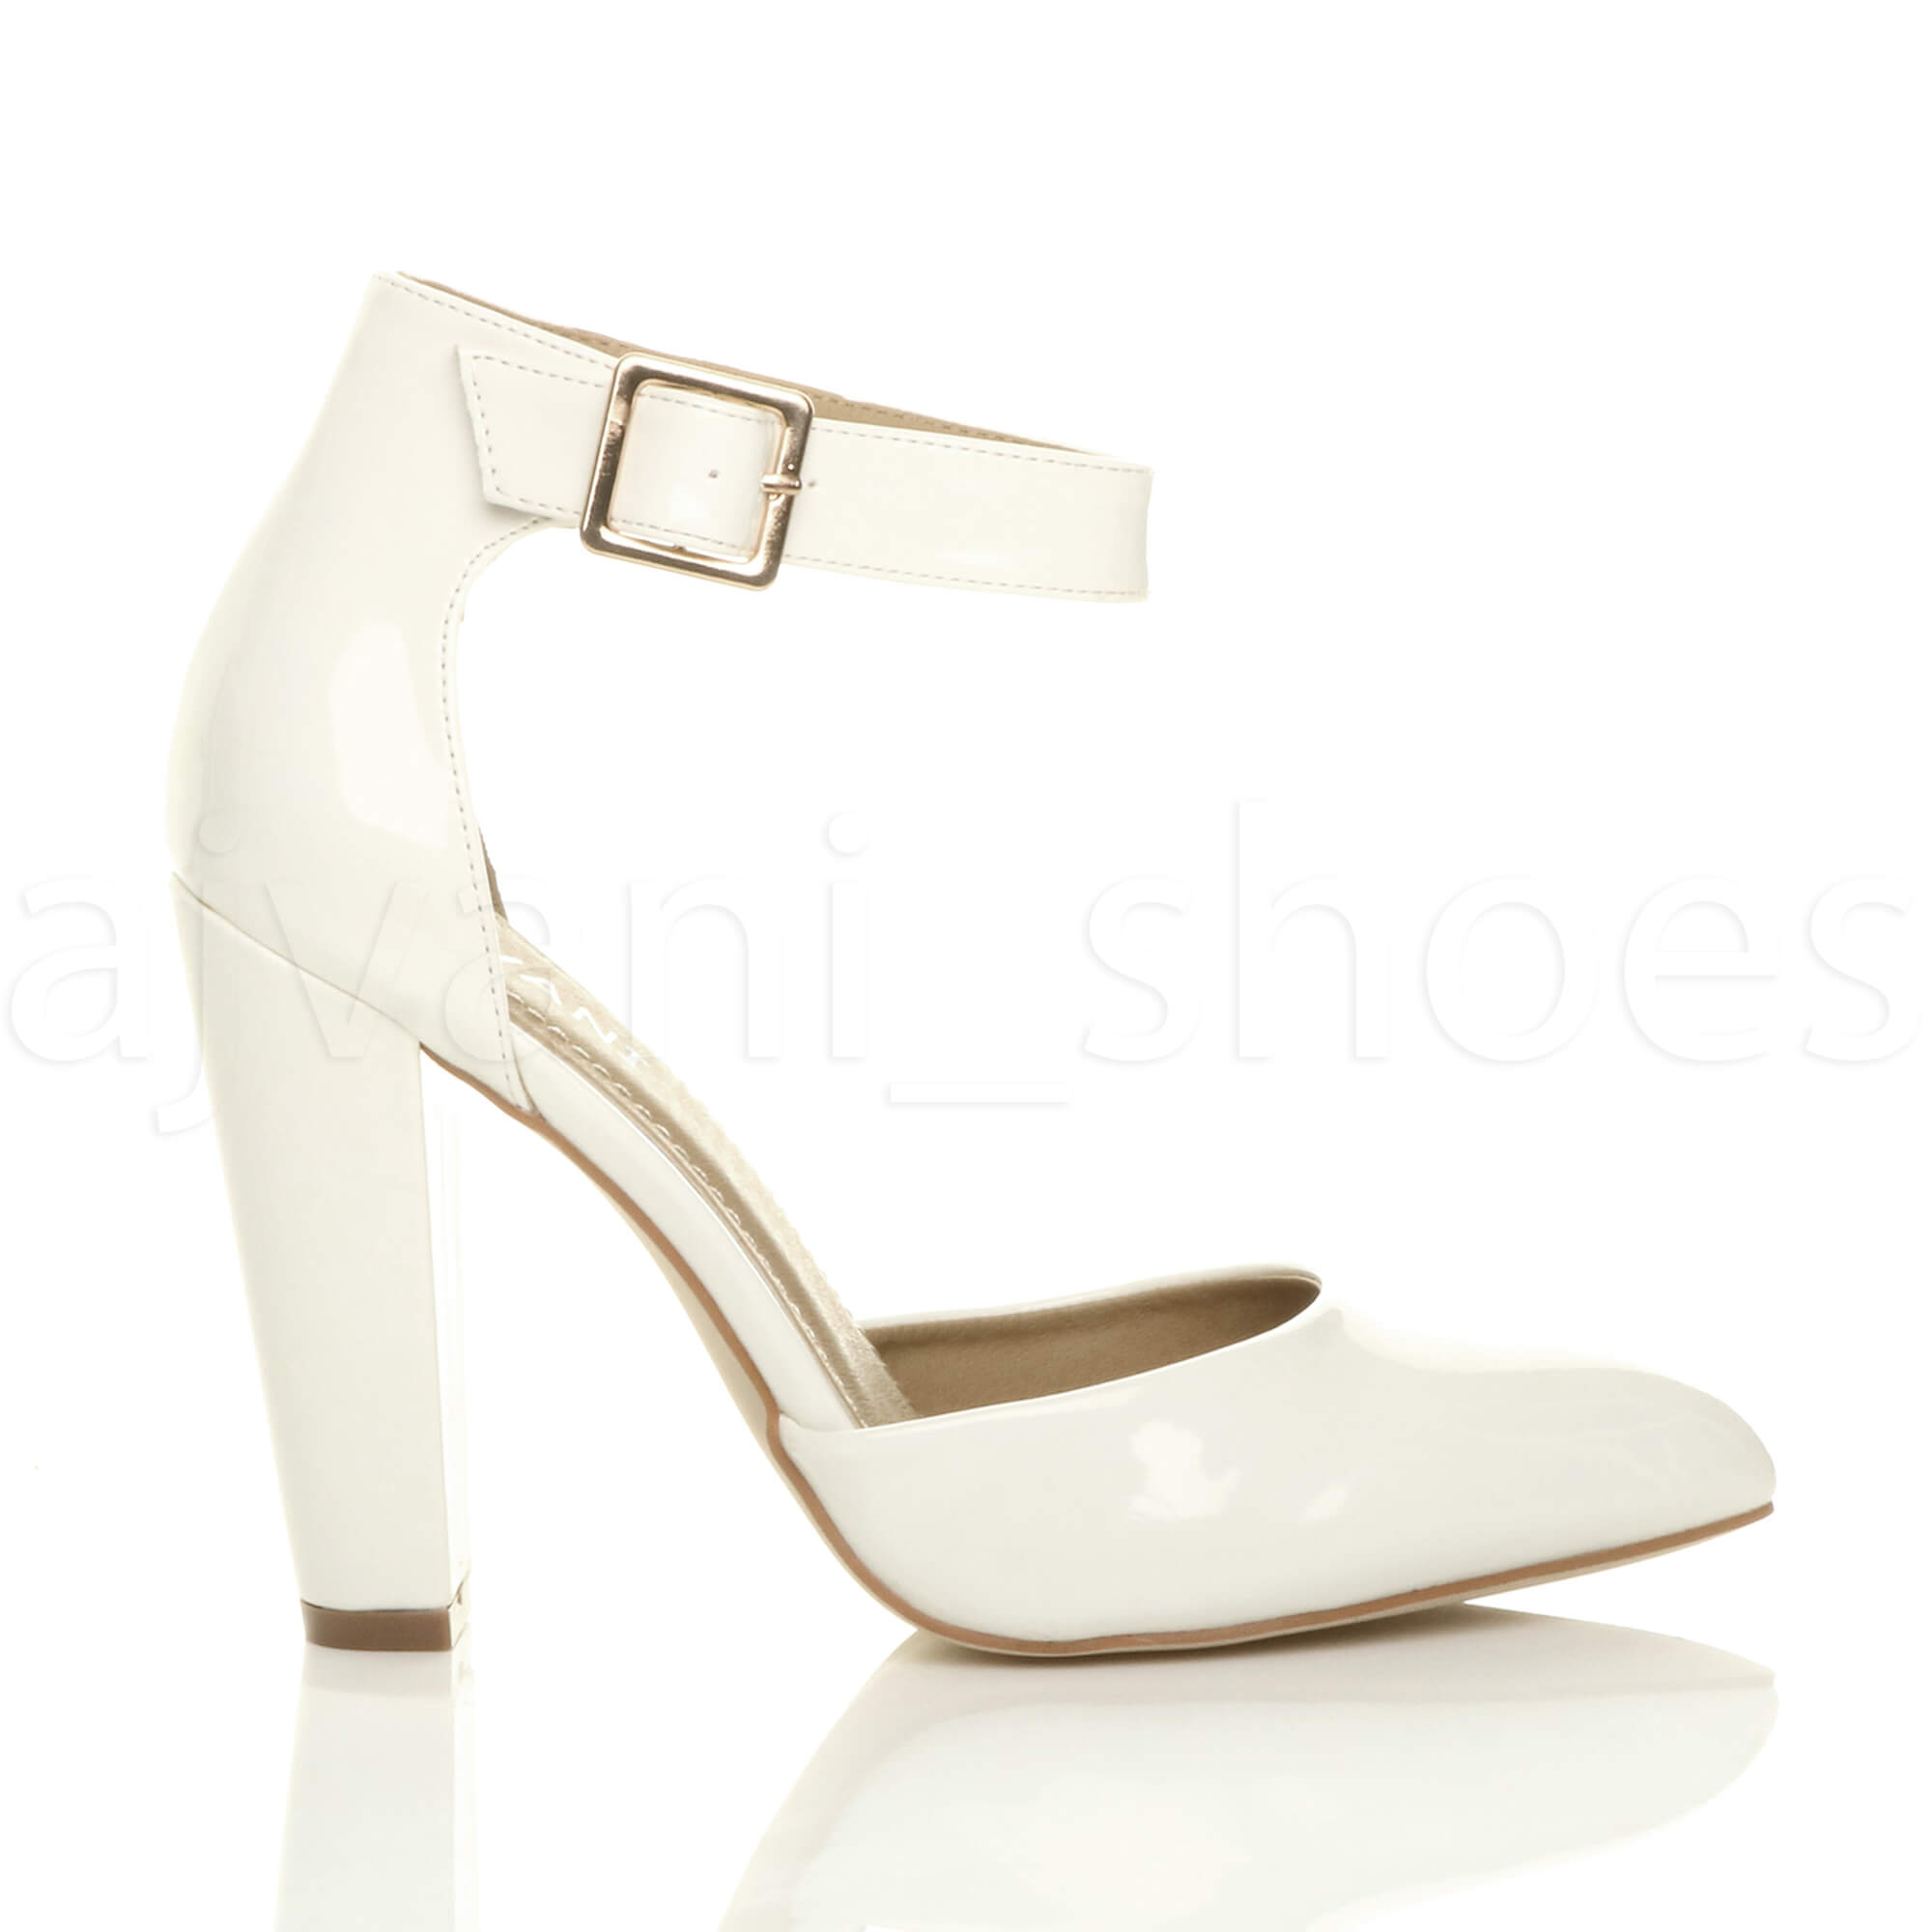 WOMENS-LADIES-HIGH-BLOCK-HEEL-ANKLE-STRAP-BUCKLE-POINTED-COURT-SHOES-SIZE thumbnail 129